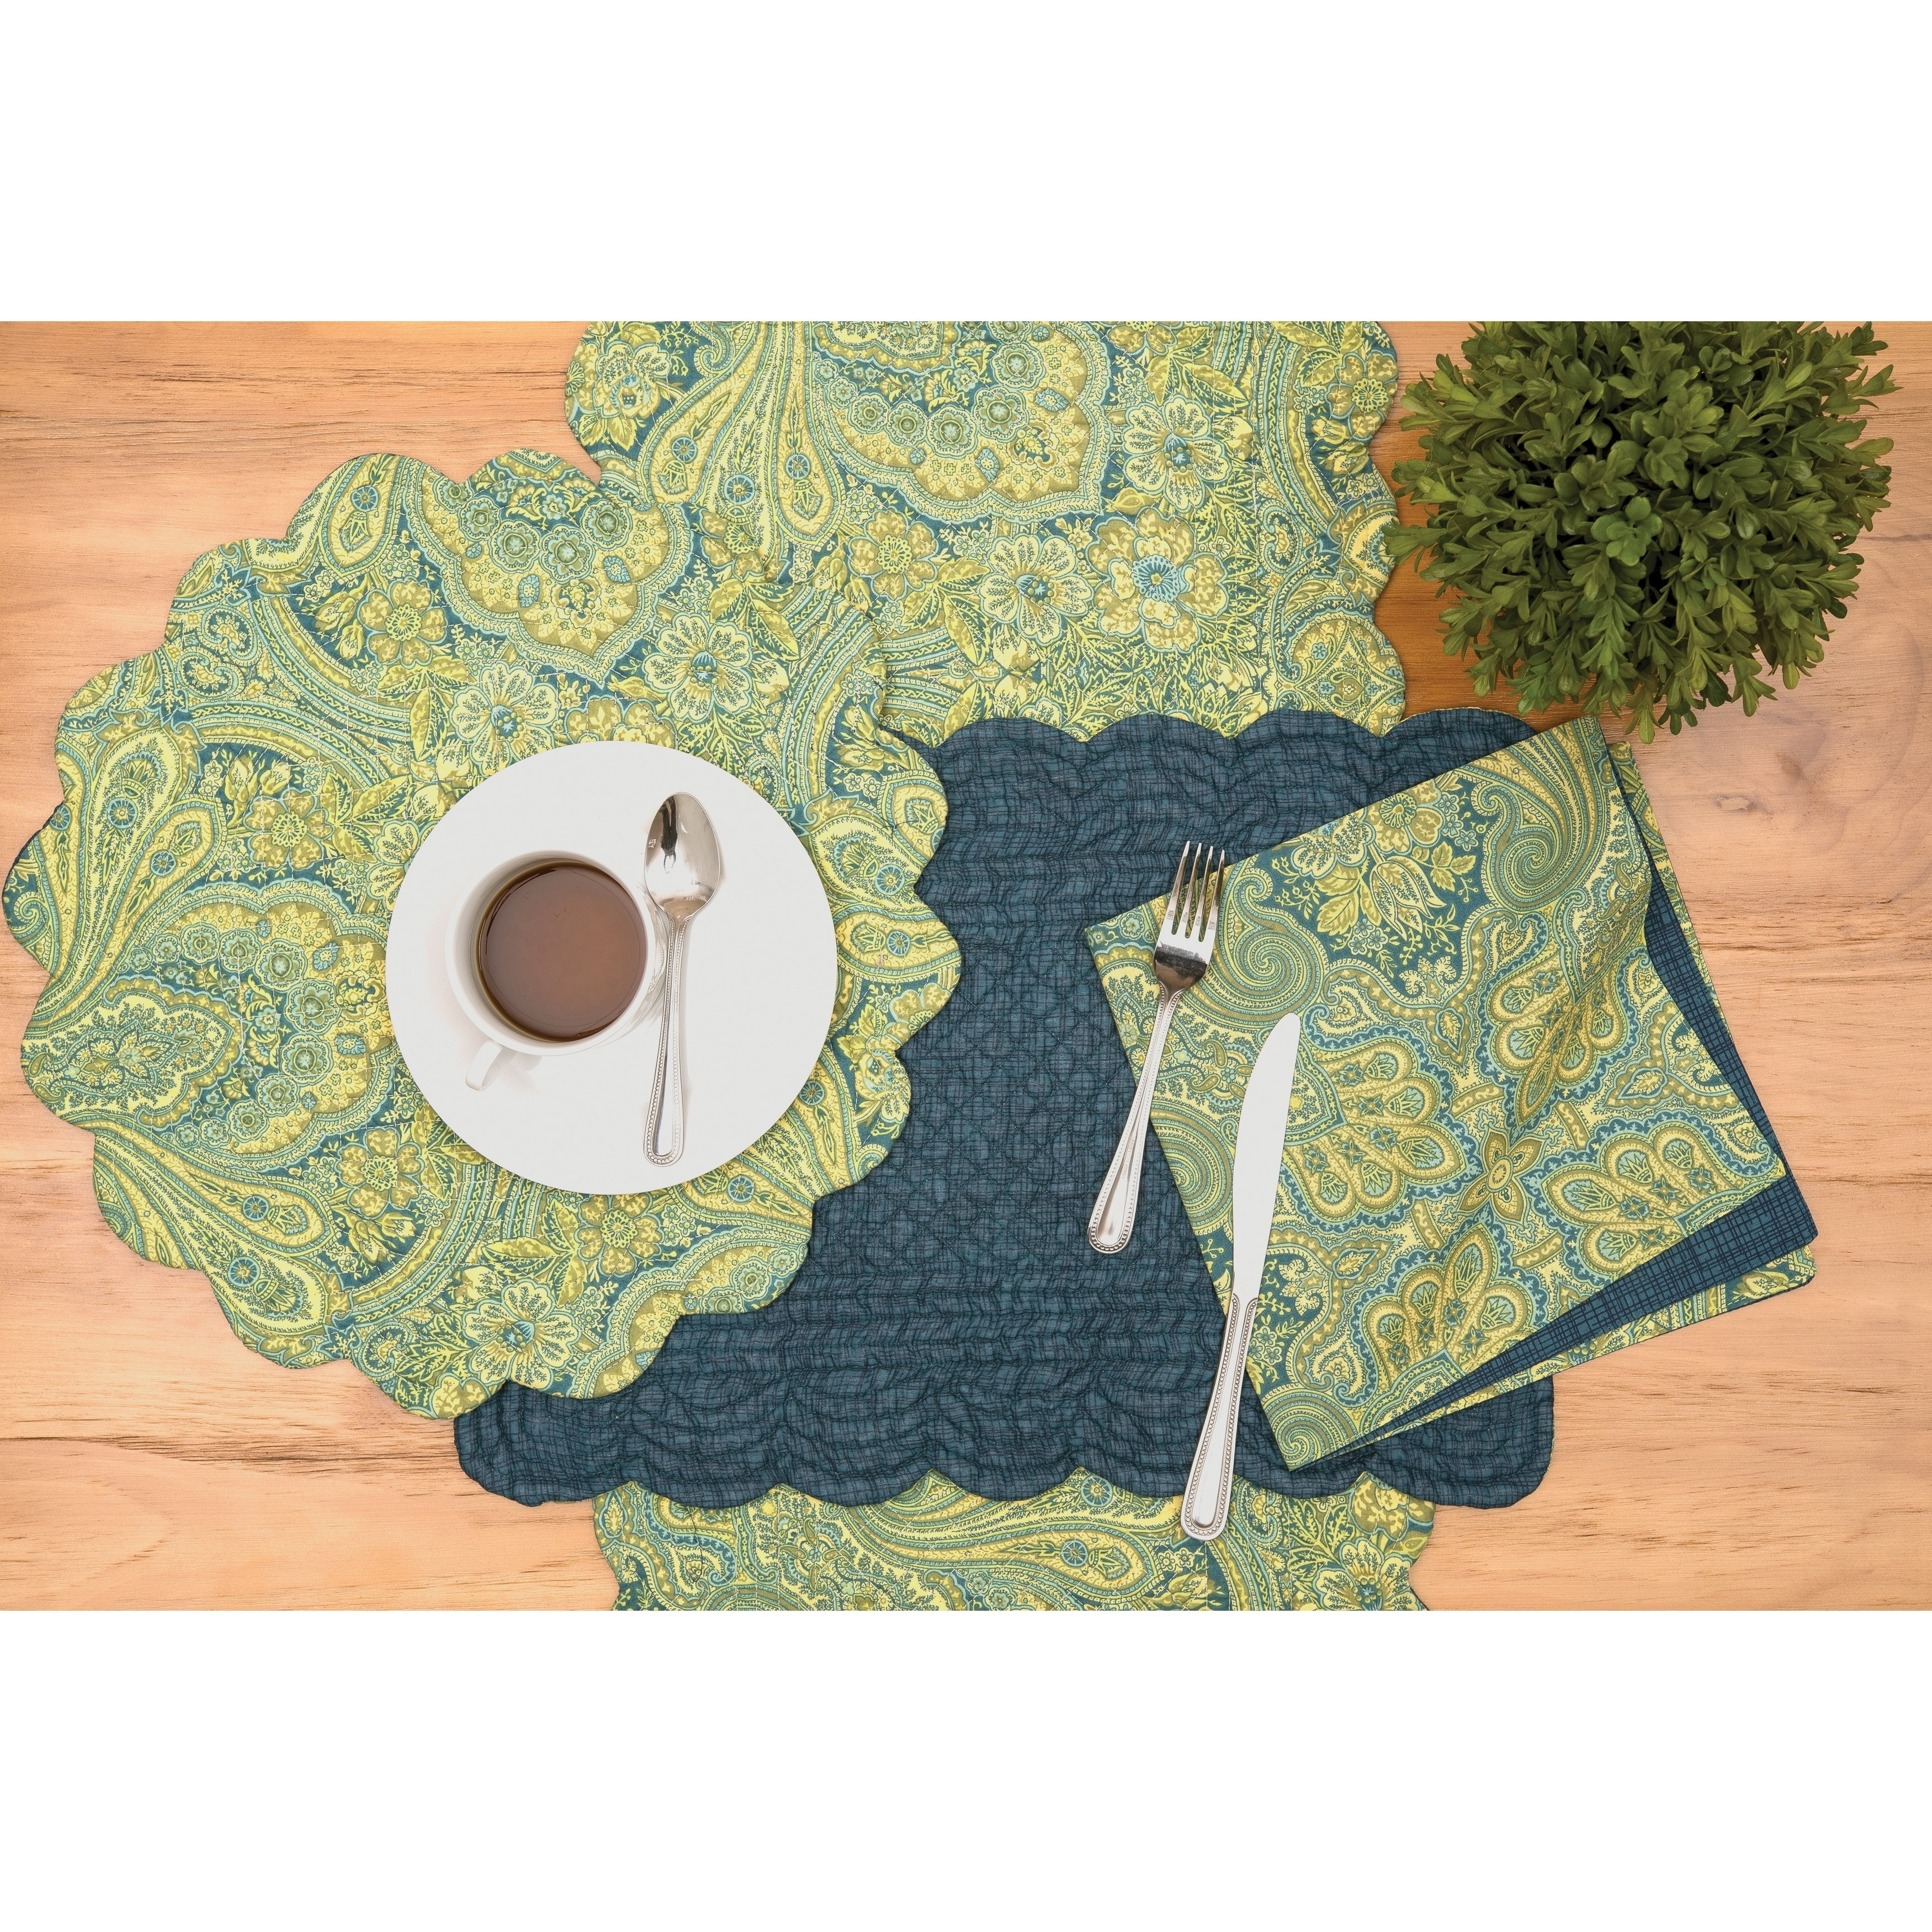 buy placemats online at